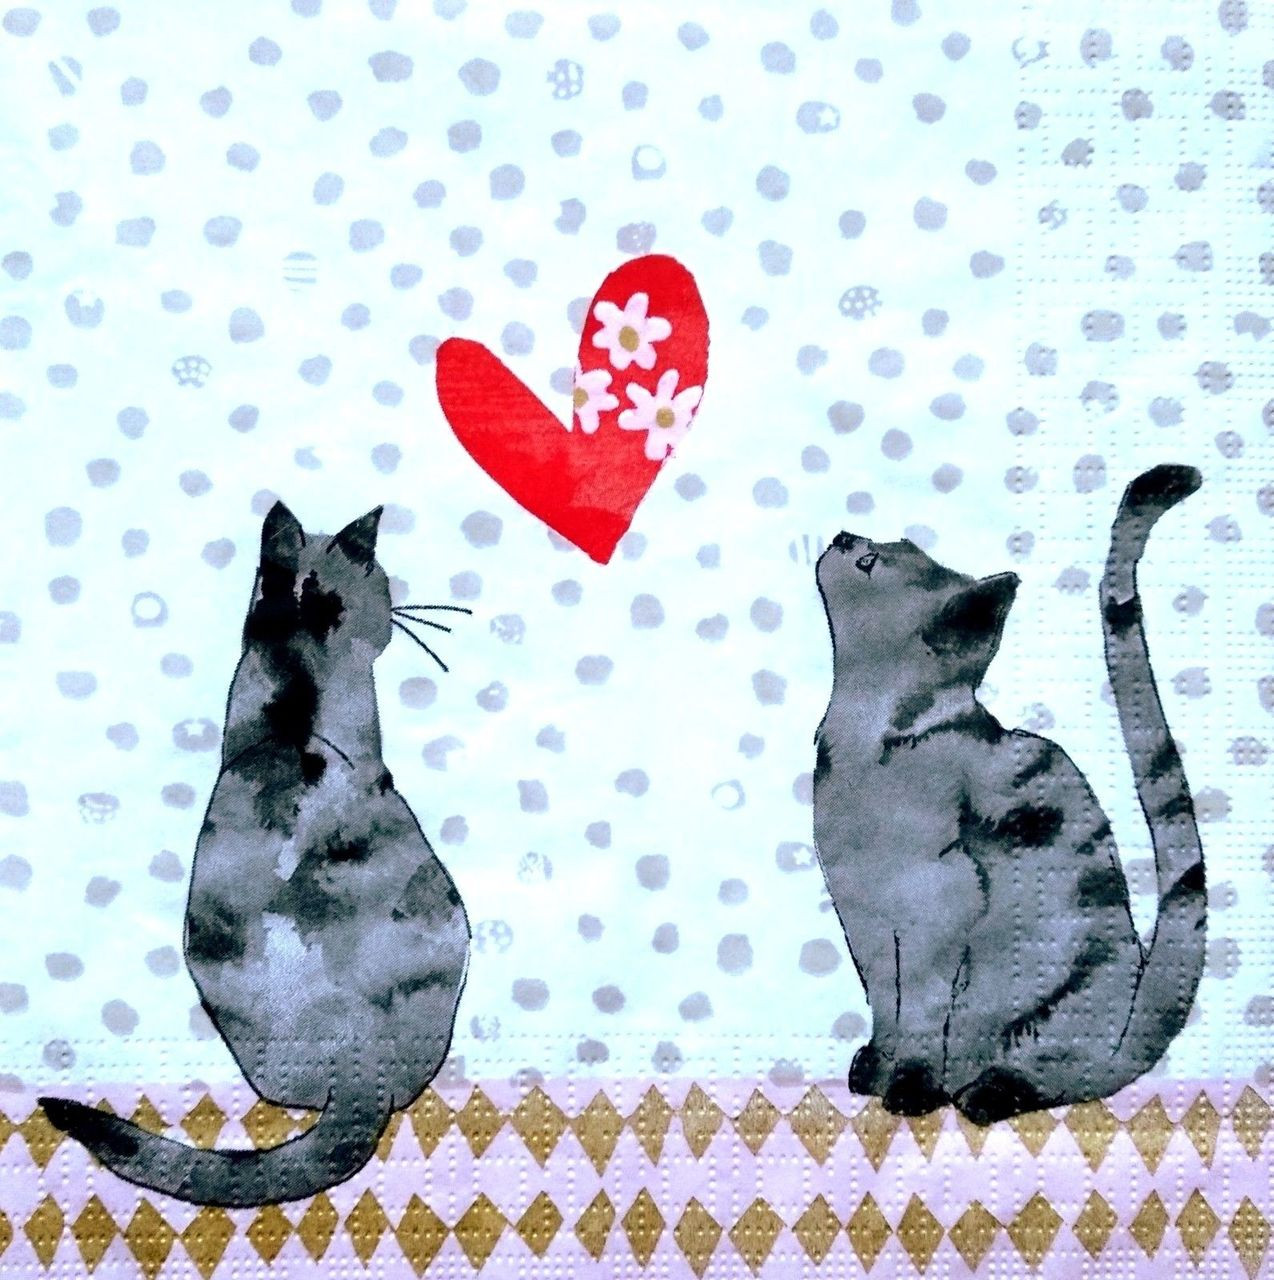 4 Lunch Paper Napkins for Decoupage Party Table Vintage Cats Kittens Love